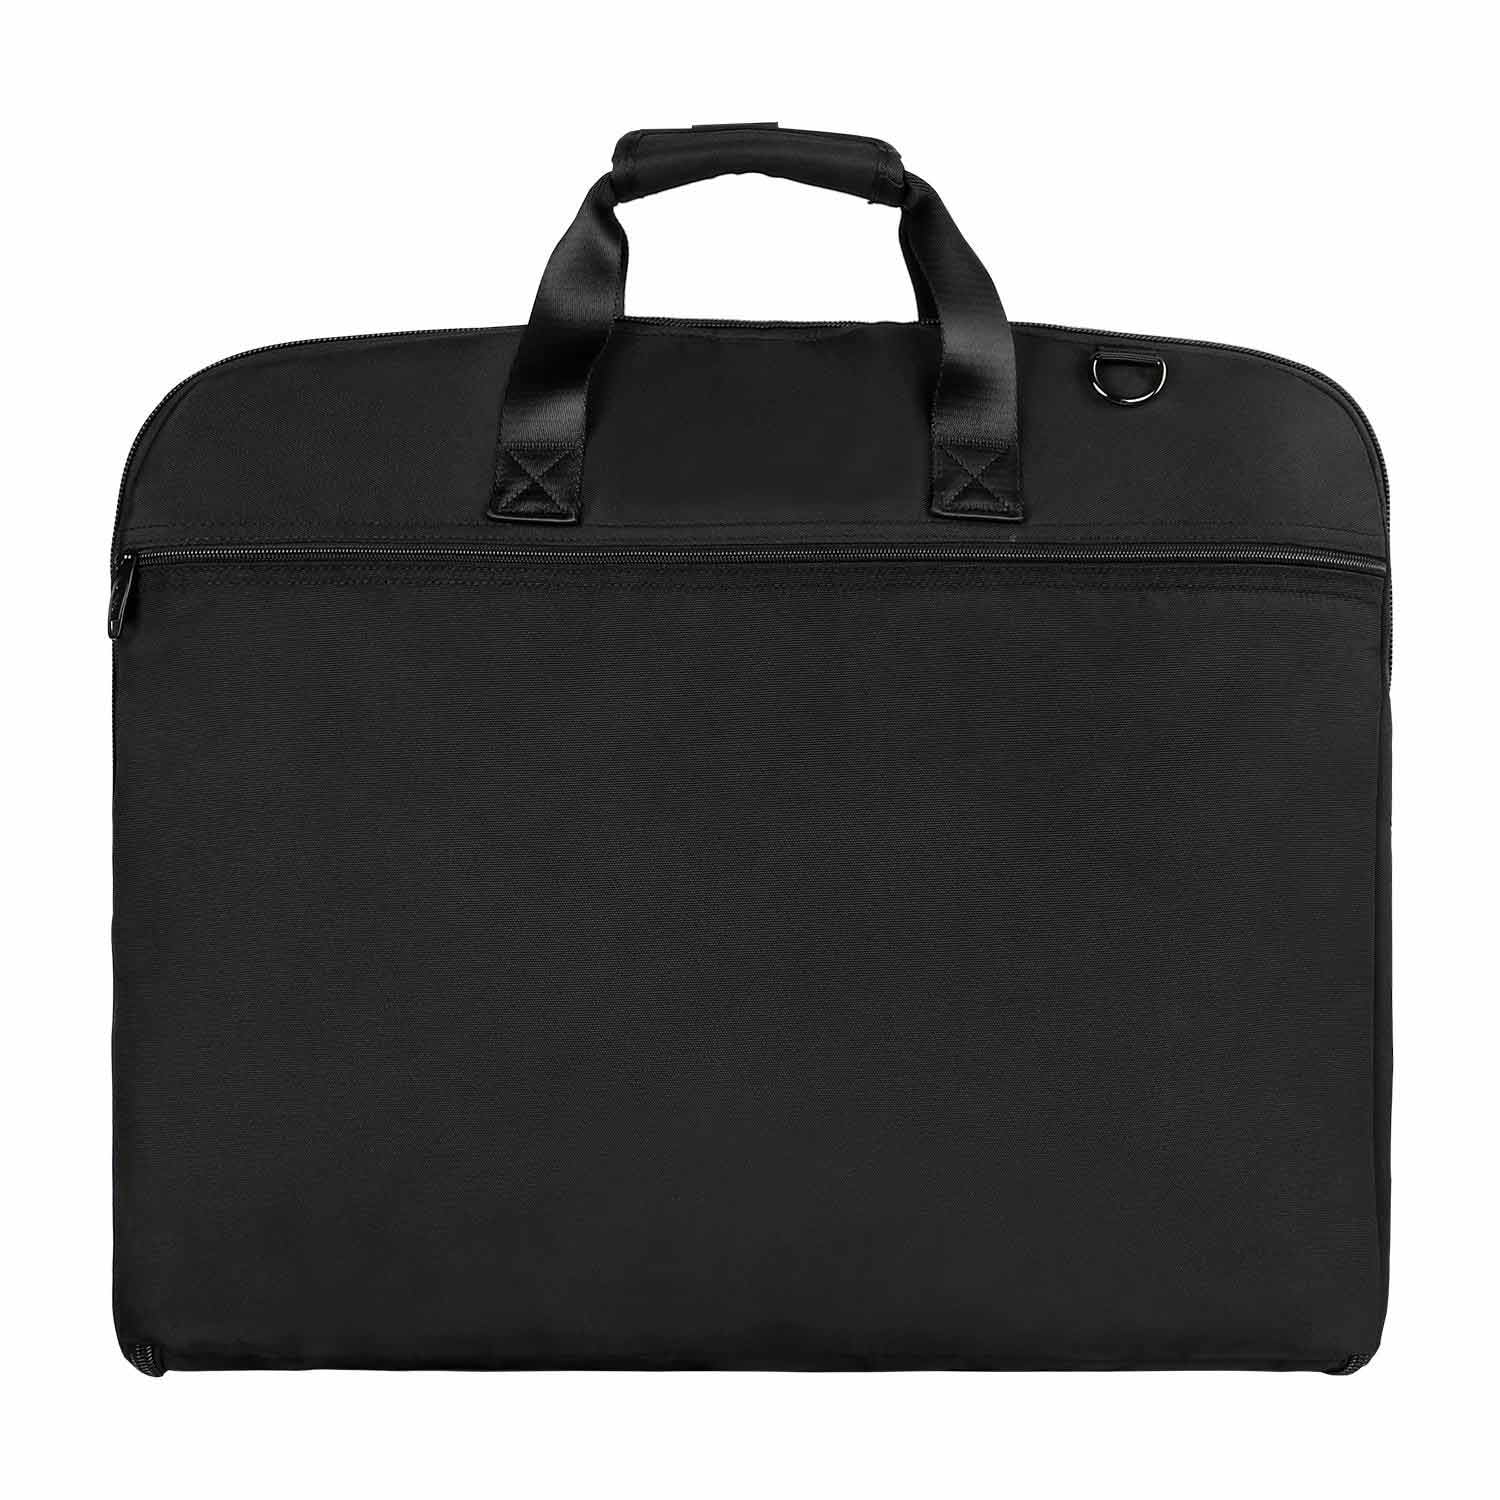 Matein Slim Garment Bag - Matein